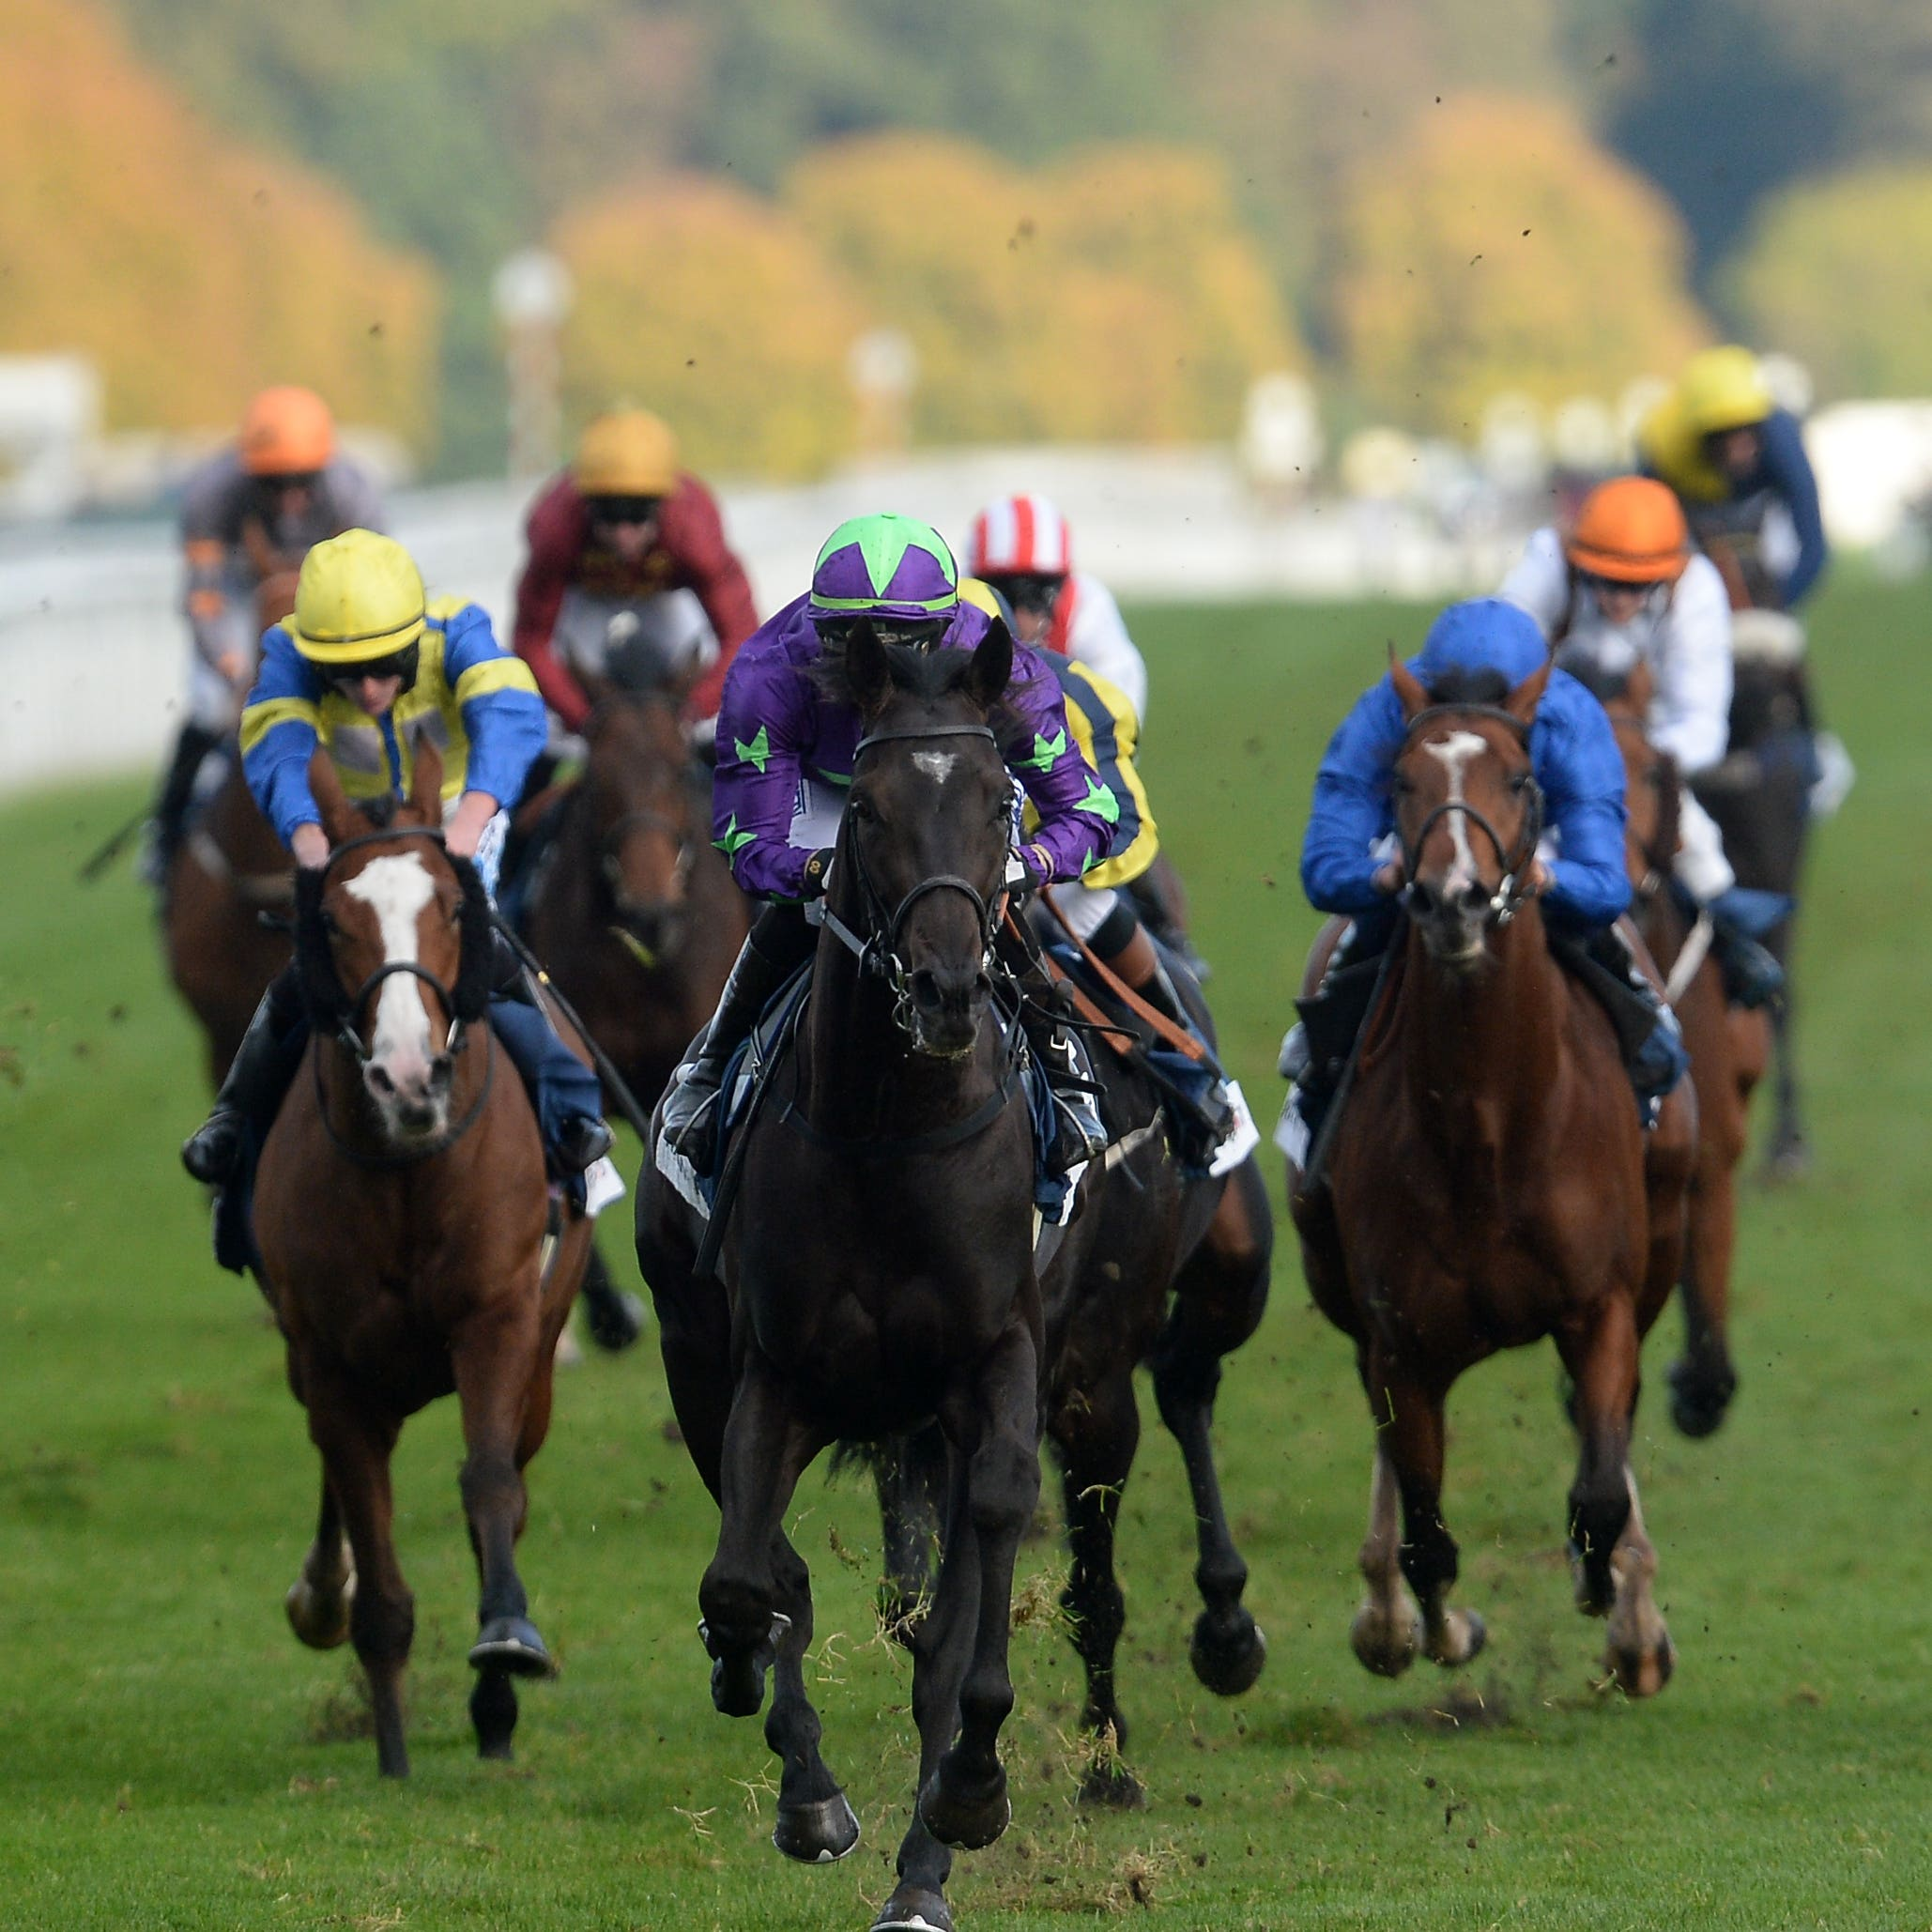 To Be Wild (centre) winning at Doncaster in 2016